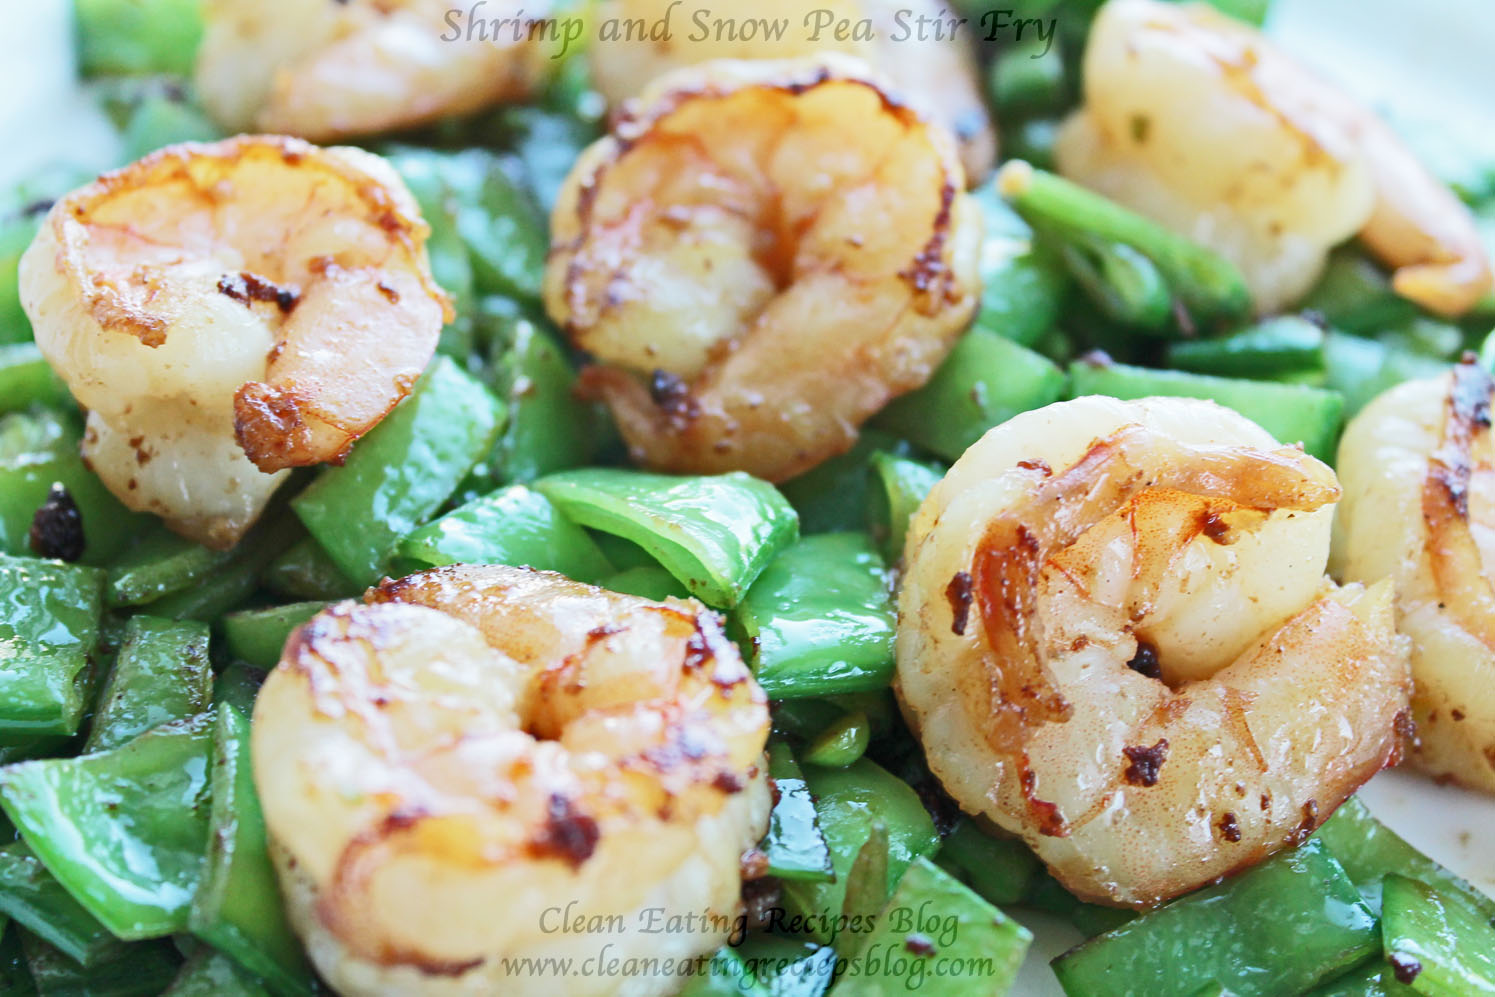 Clean Eating Recipe – Shrimp and Snow Pea Stir Fry